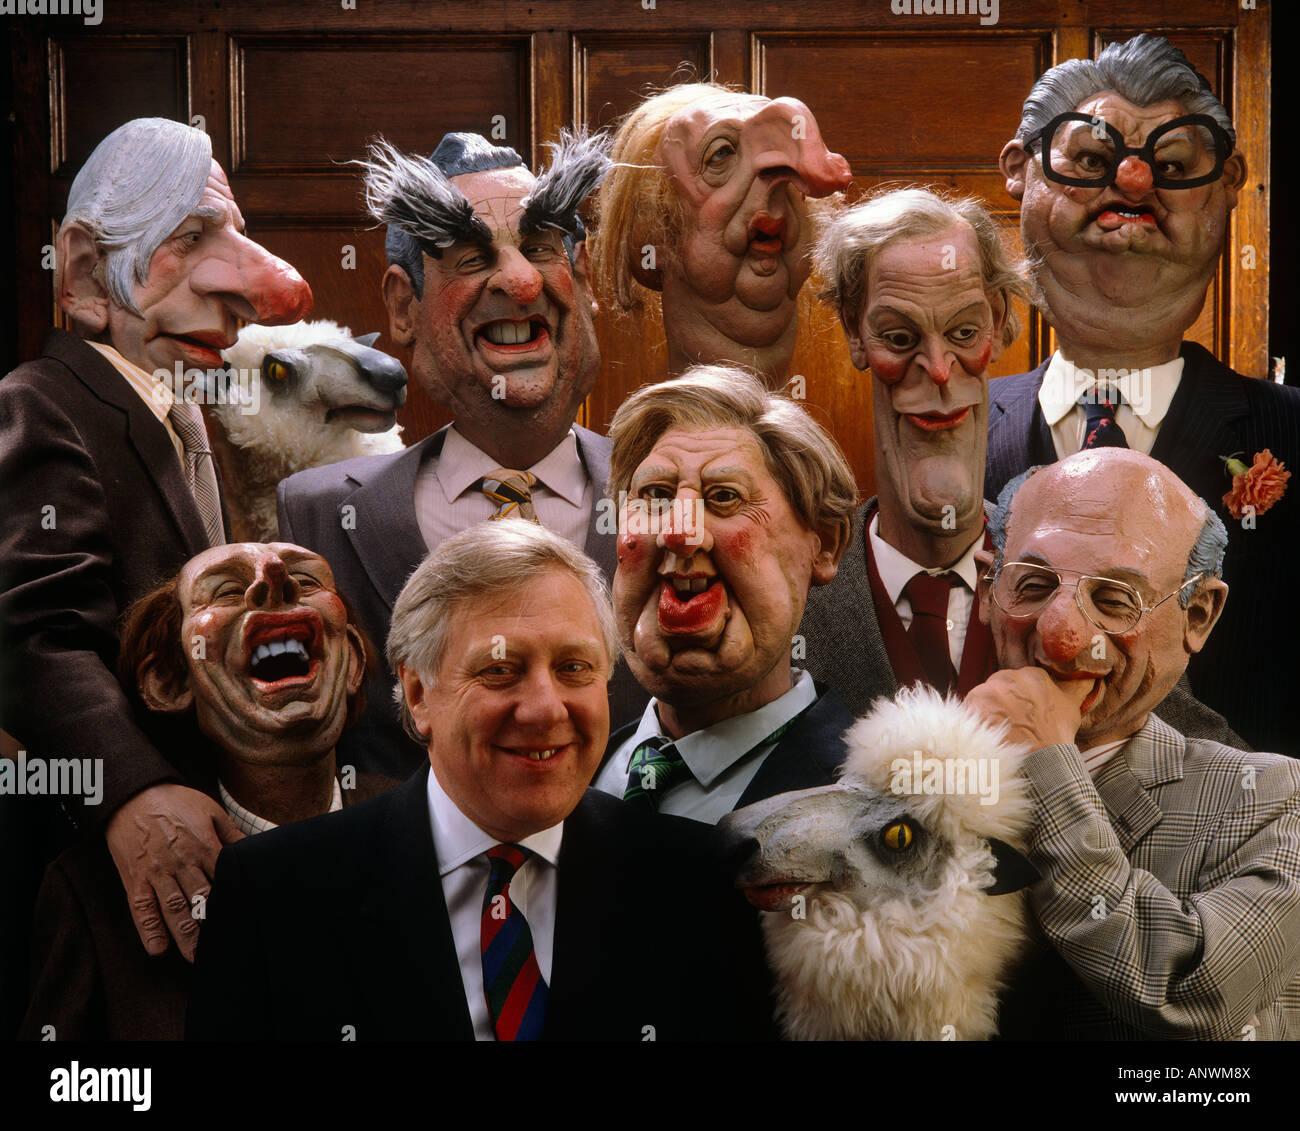 roy-hattersley-and-spitting-image-puppet